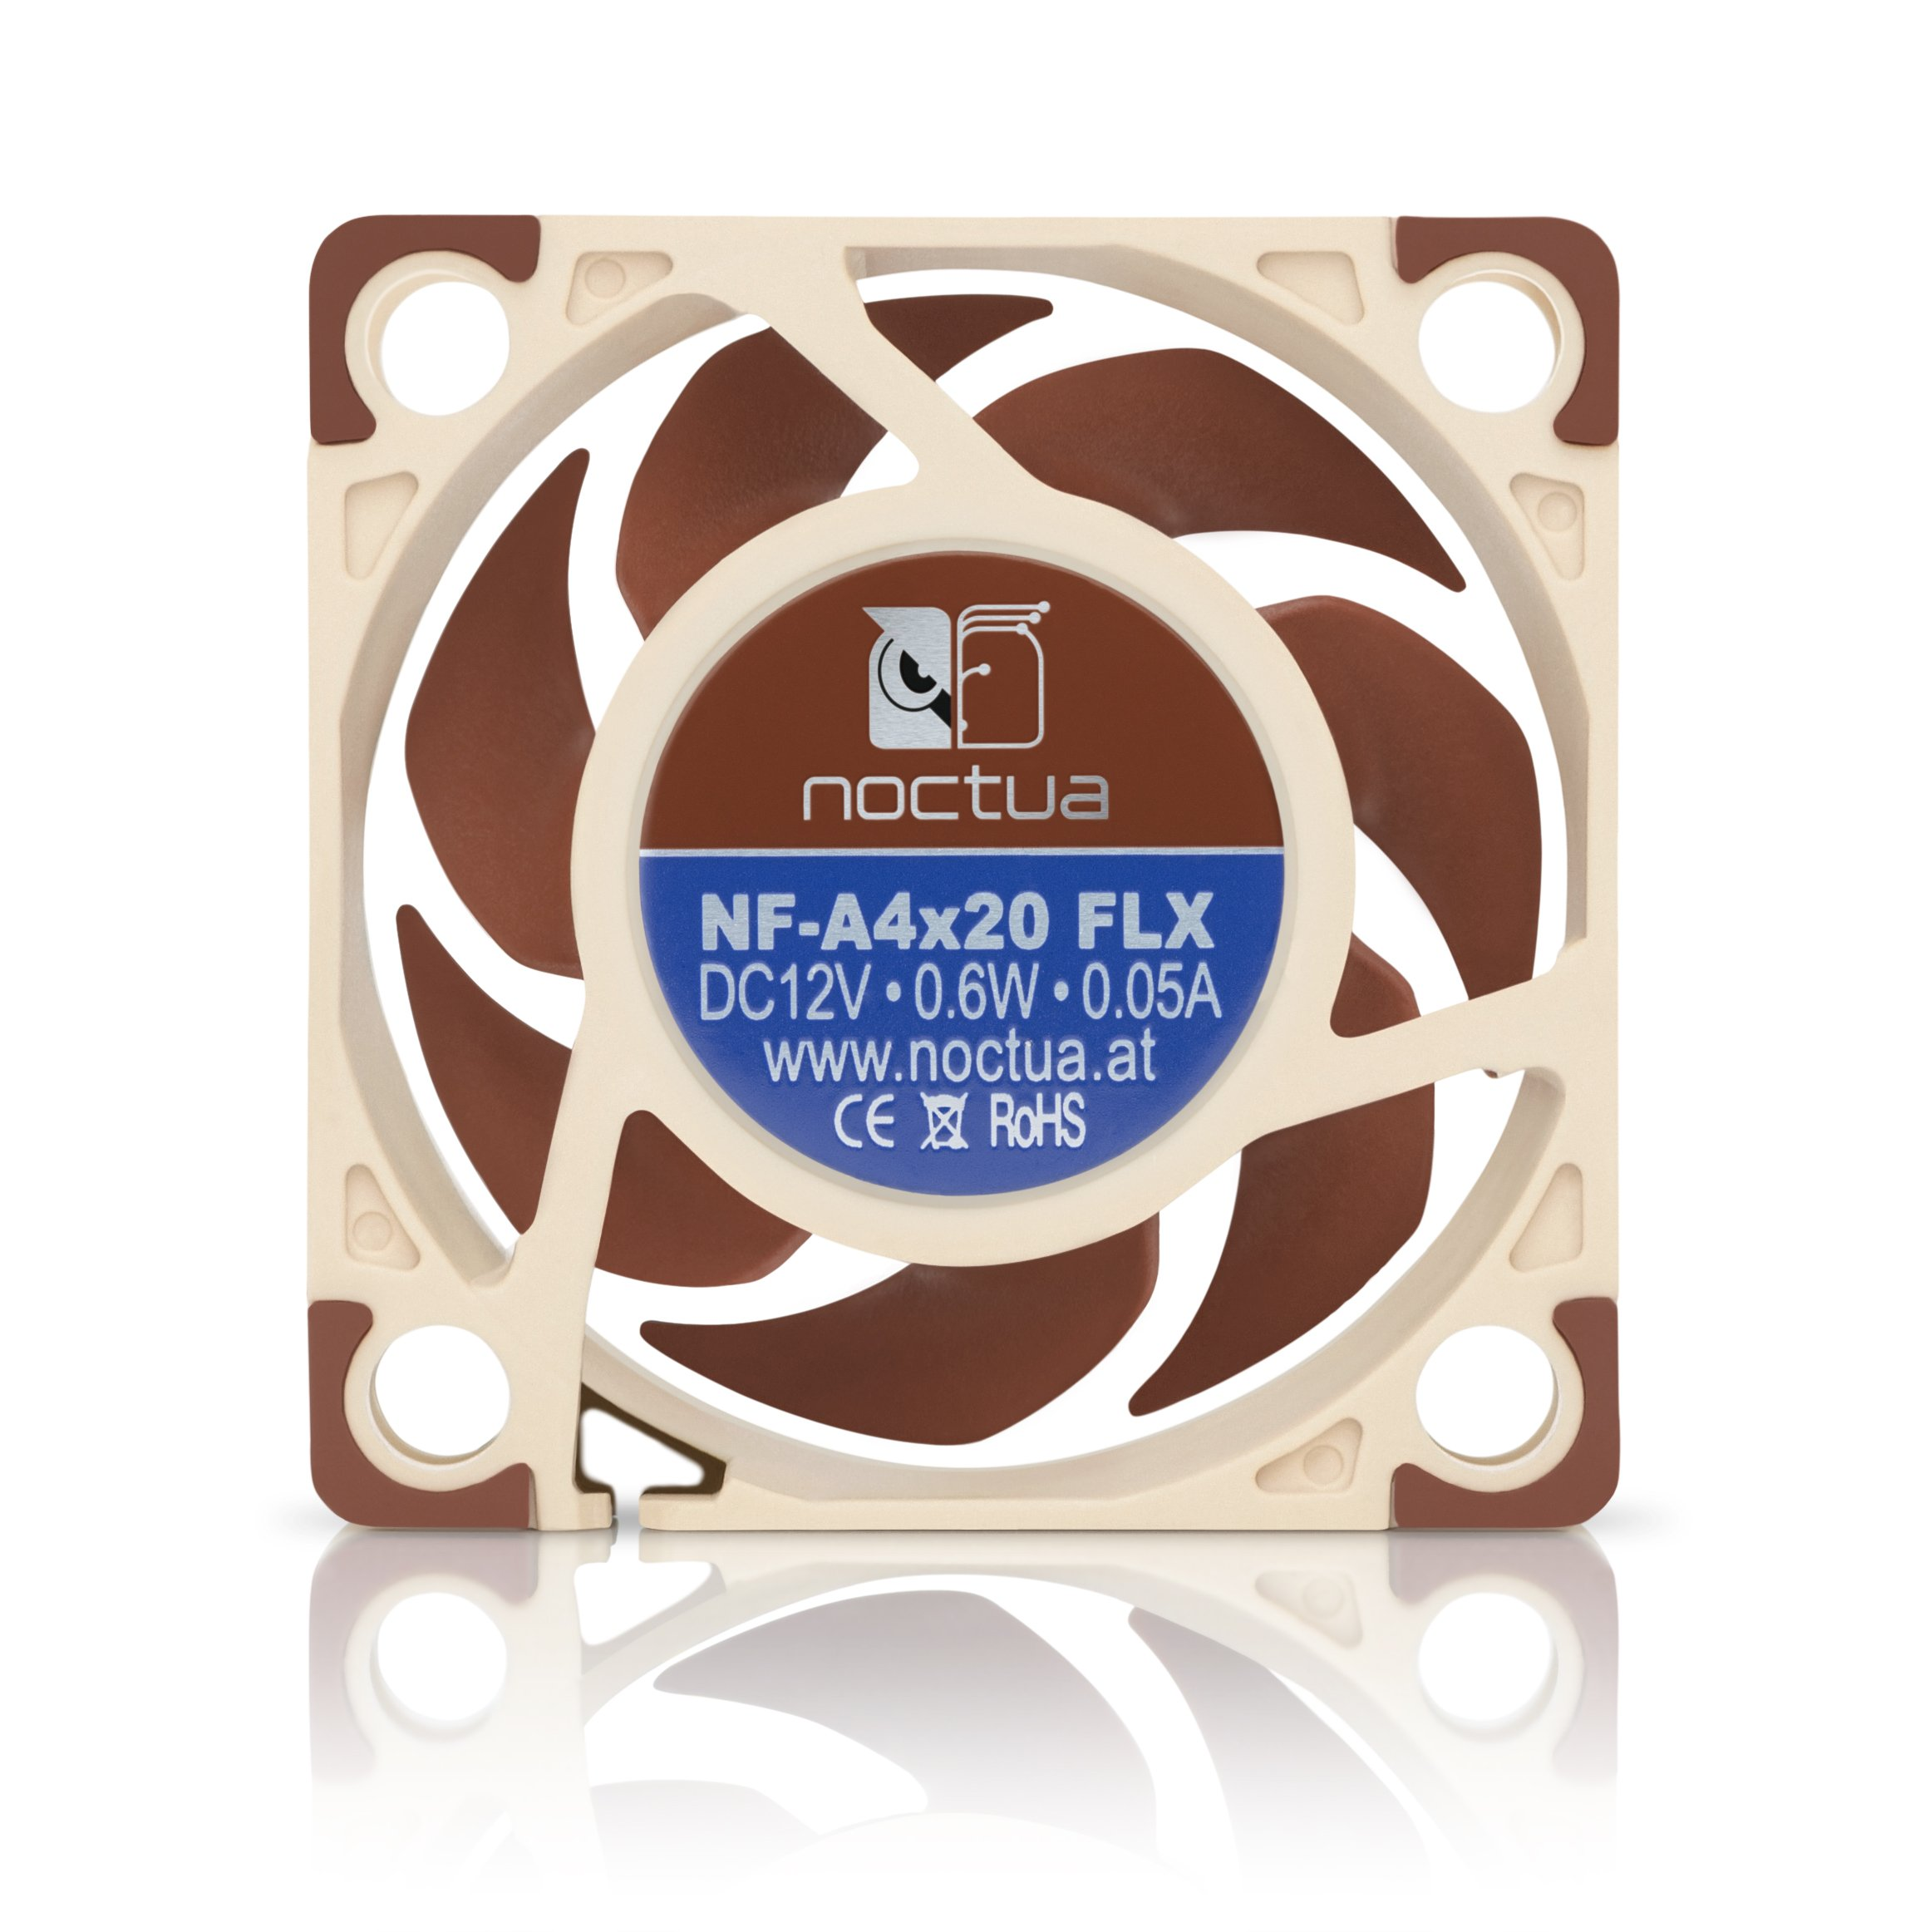 Noctua NF-A4x20 FLX premium-quality quiet 40mm fan